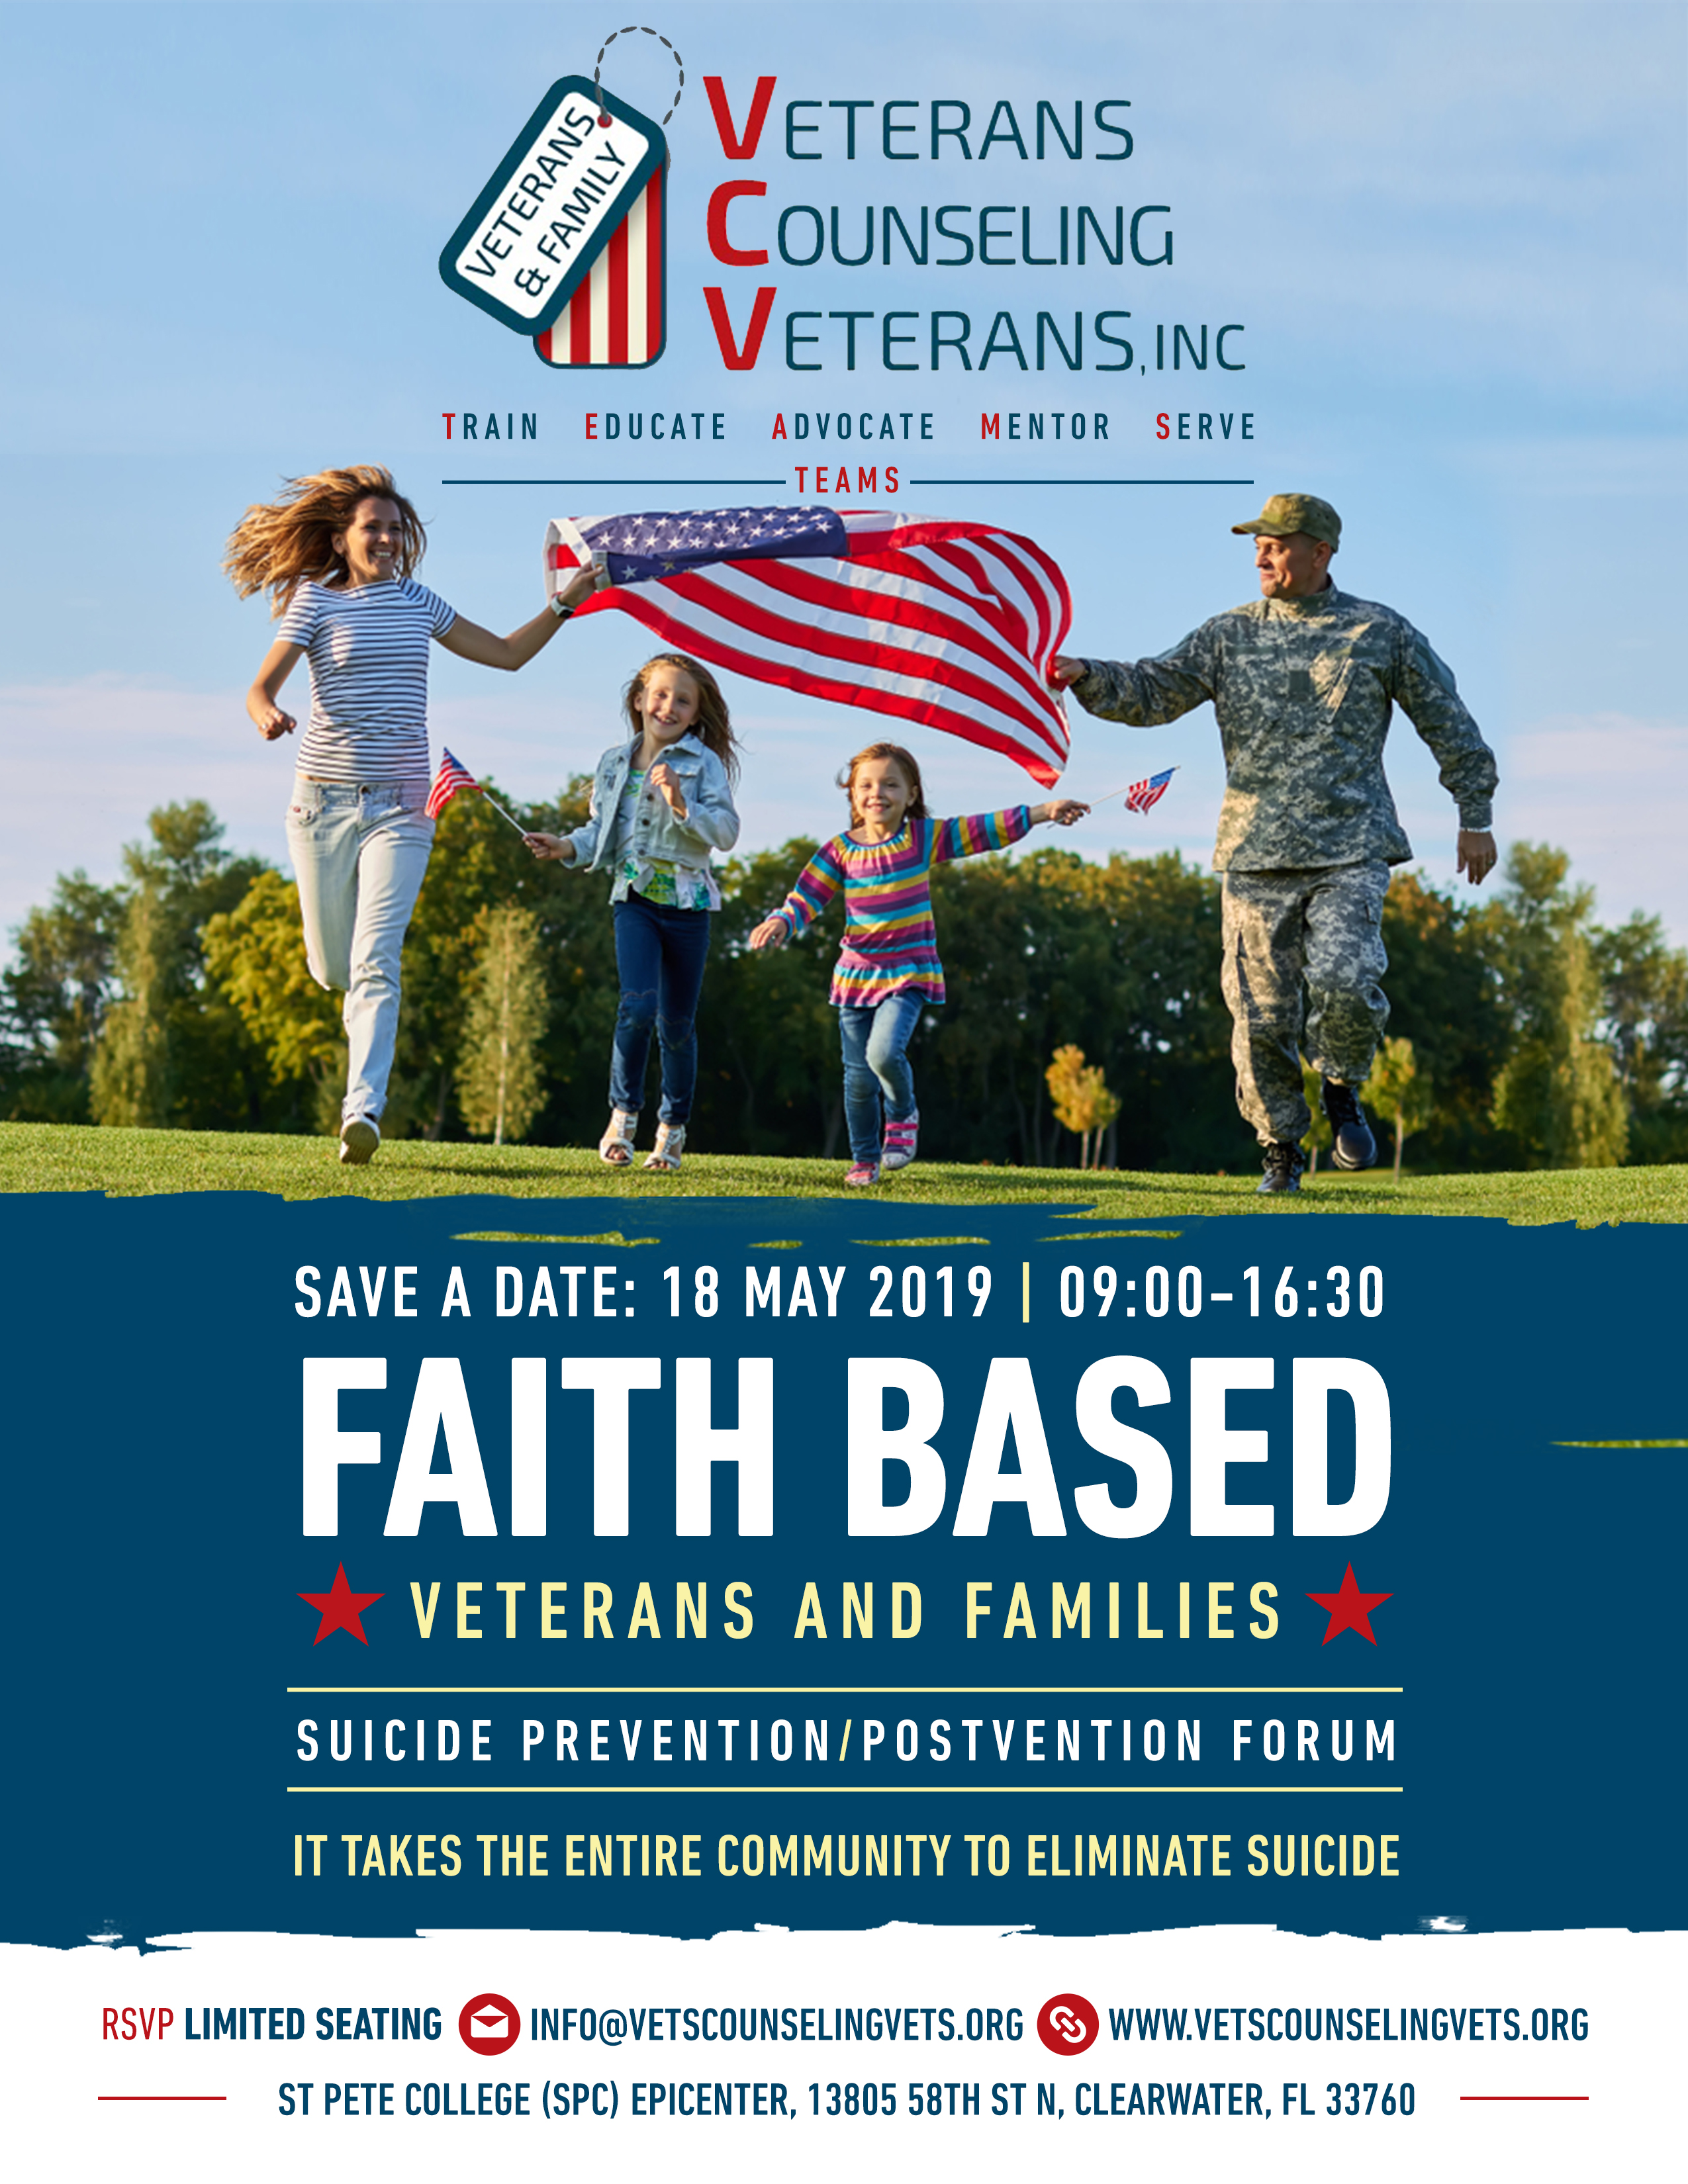 Faith Based Organizations, Mental Health and Veteran Organizations Forum on Suicide Prevention